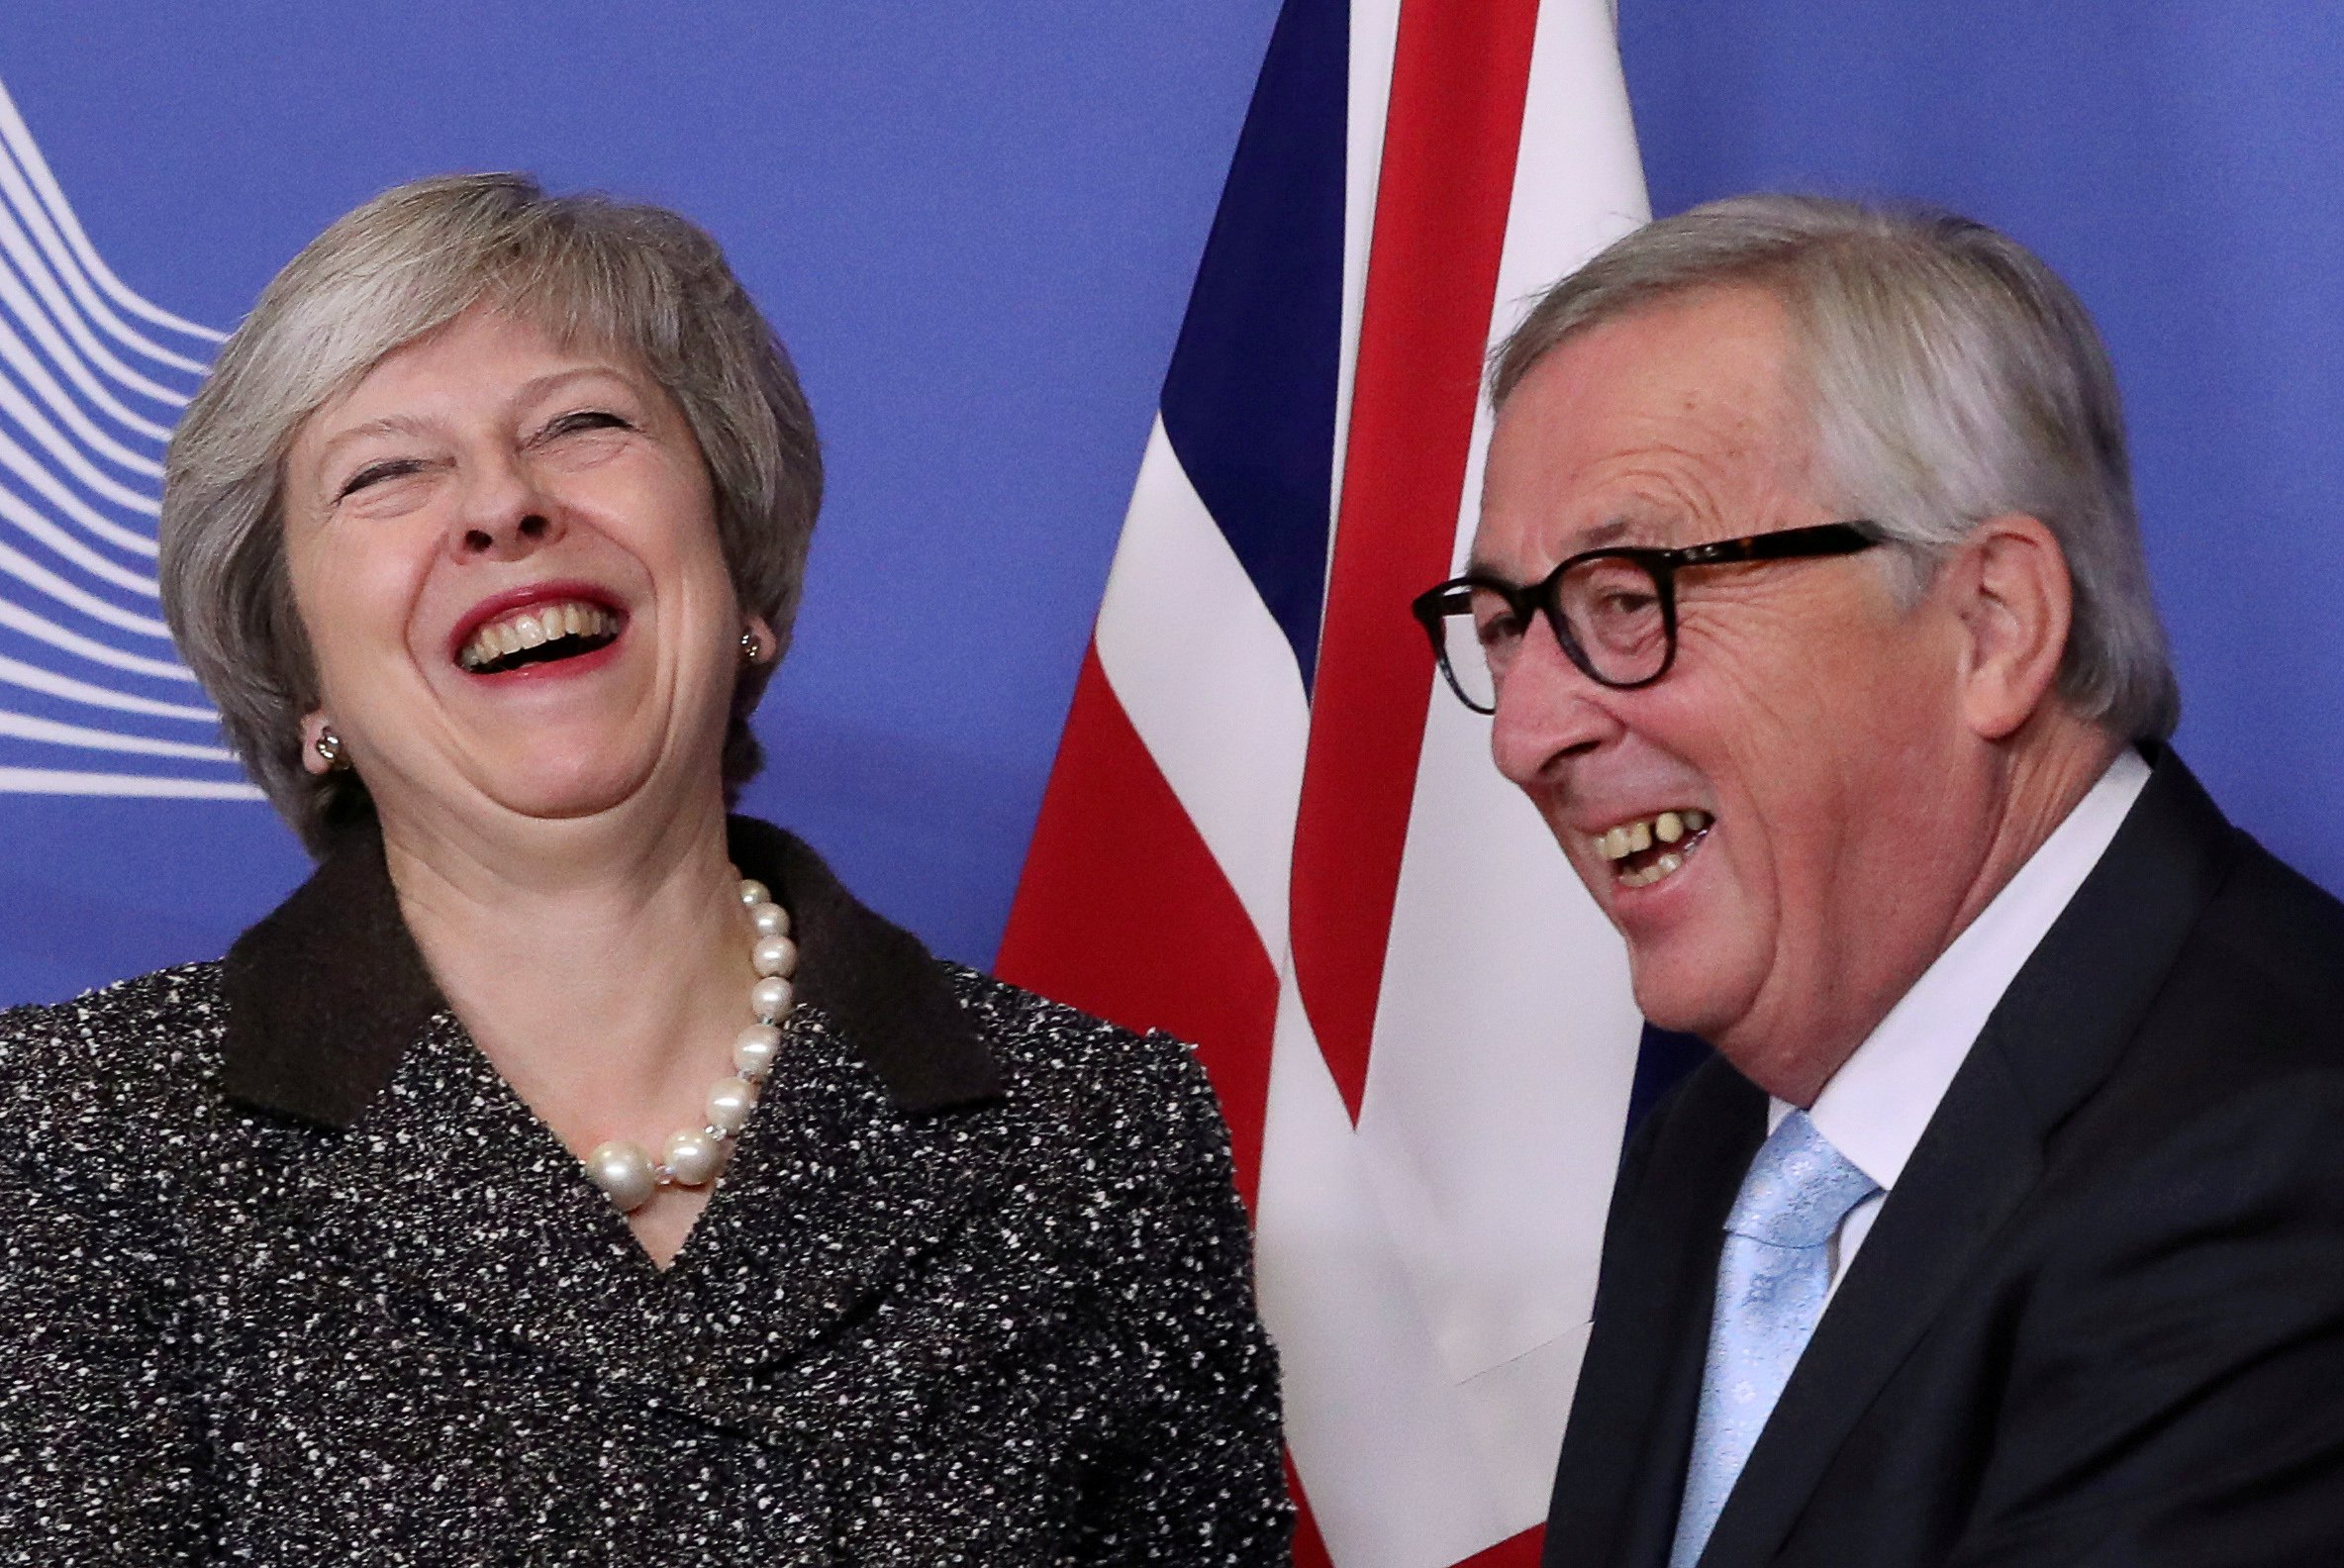 British Prime Minister Theresa May meets with European Commission President Jean-Claude Juncker to discuss Brexit, at the European Commission headquarters in Brussels, Belgium December 11, 2018. REUTERS/Yves Herman TPX IMAGES OF THE DAY